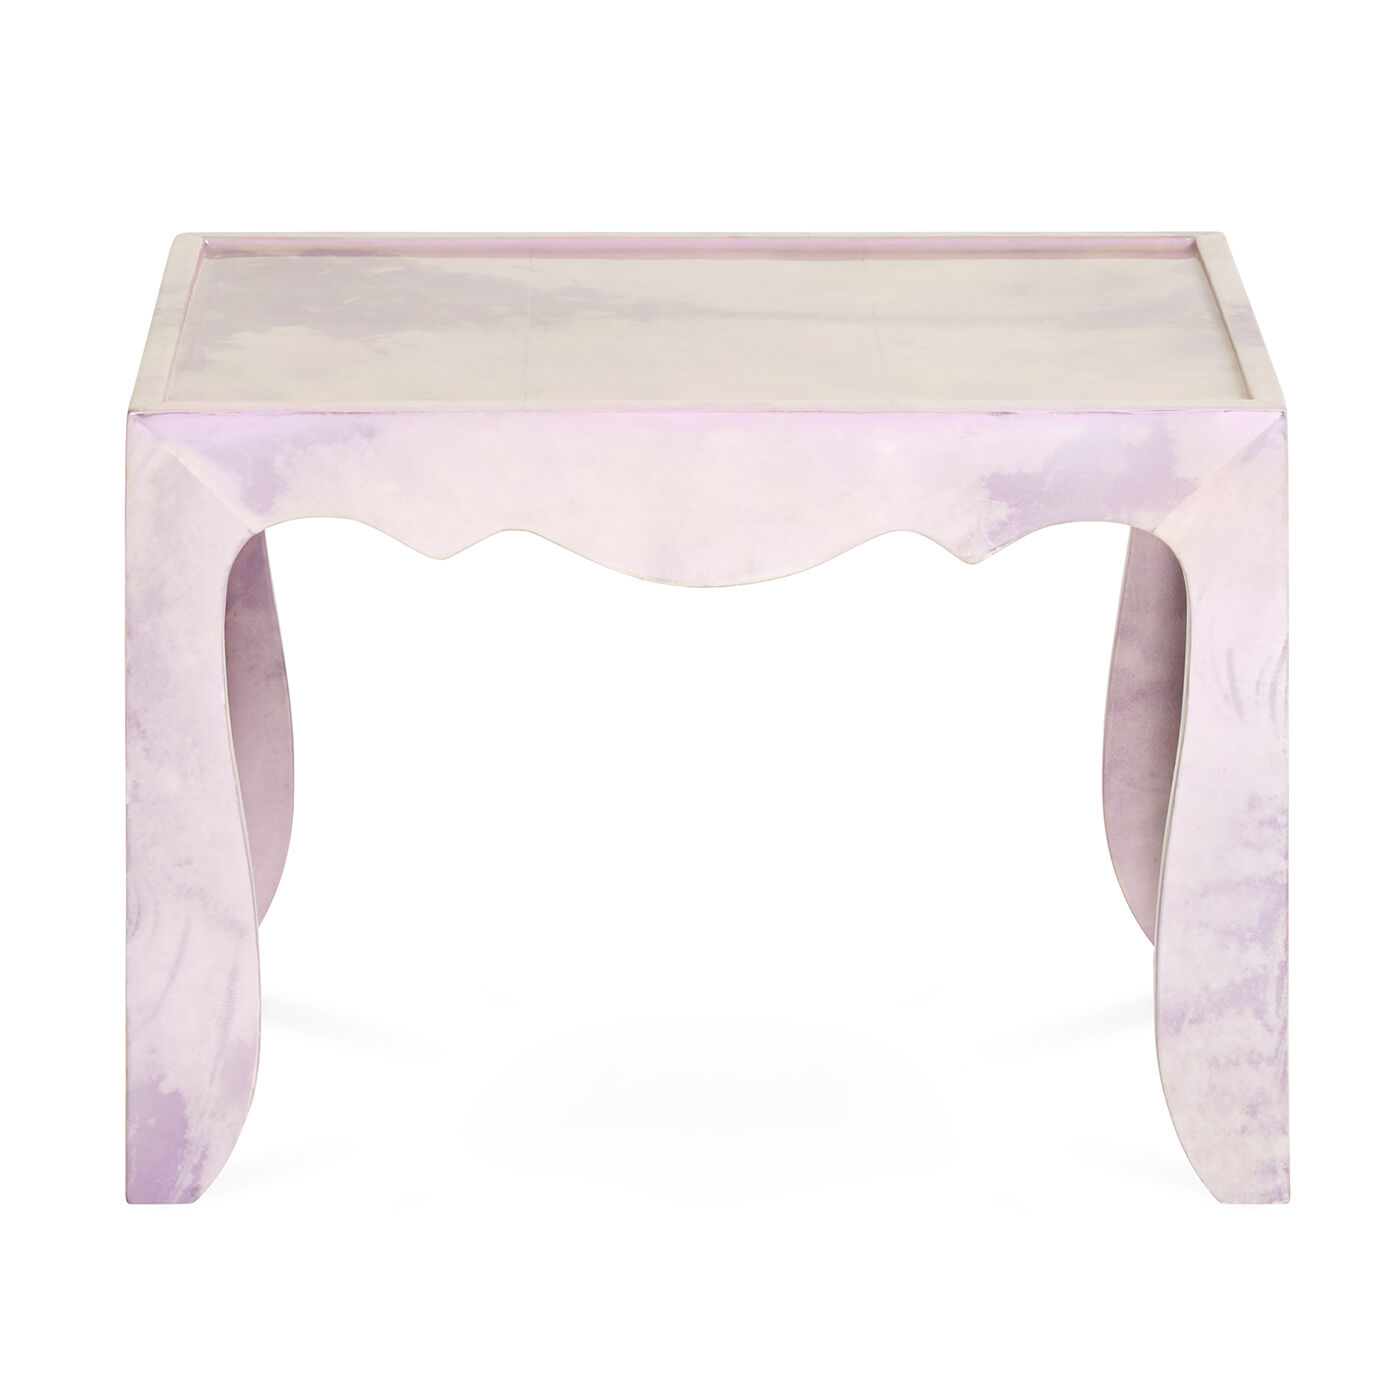 Side U0026amp; Accent Tables   Trocadero Accent Table